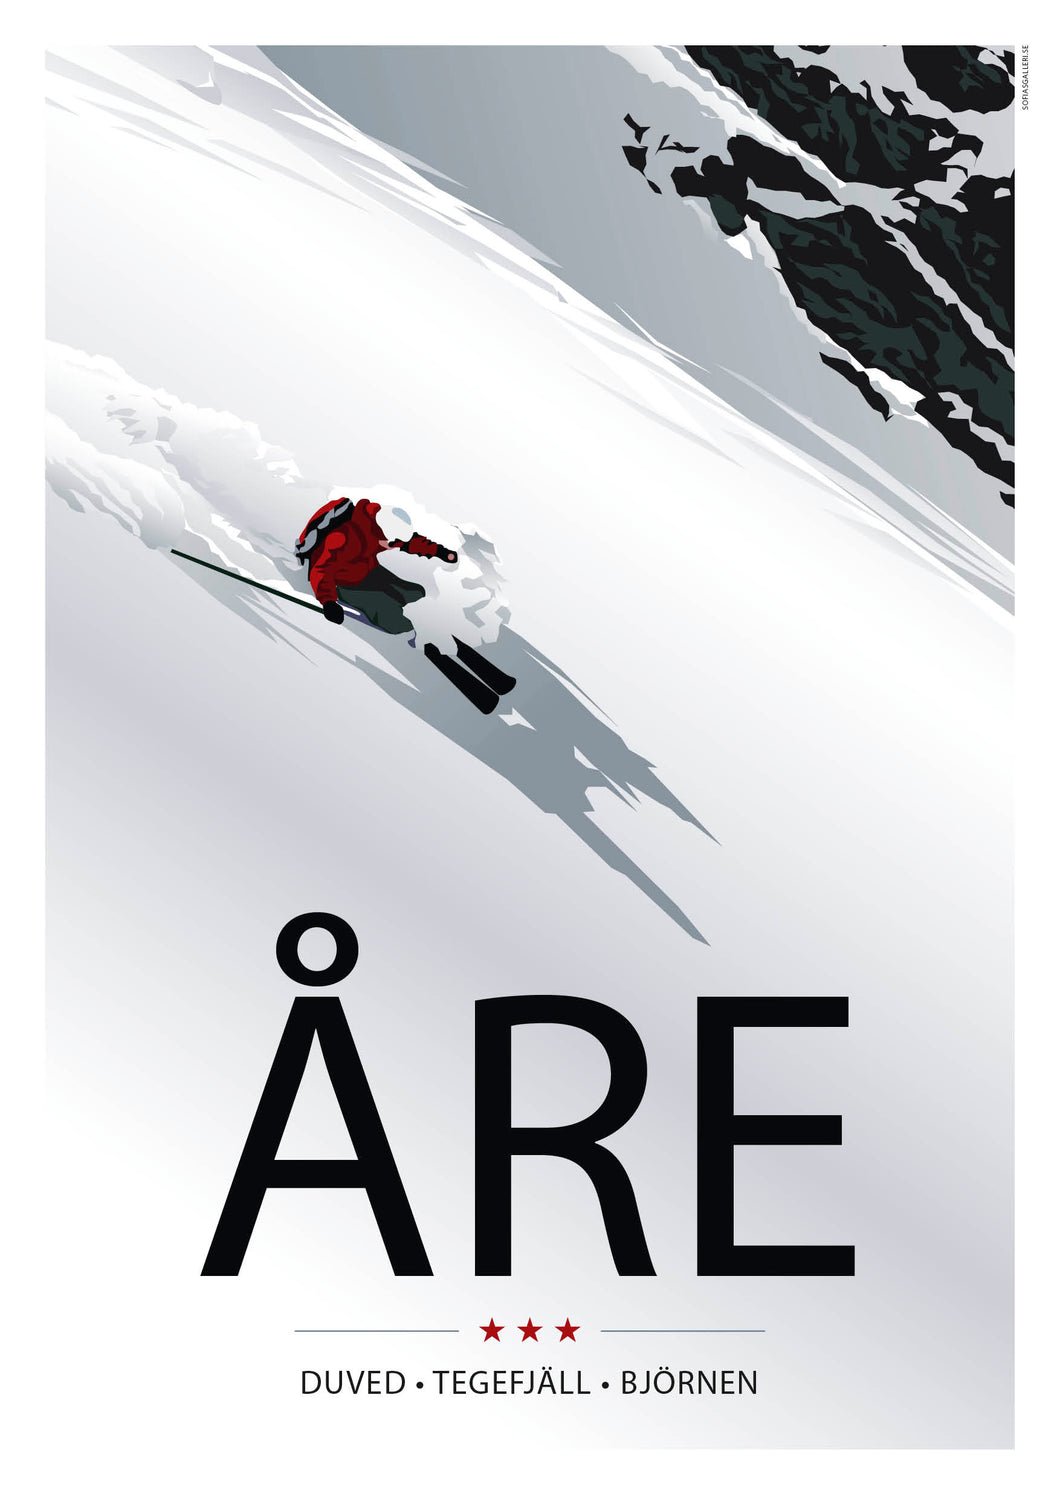 Poster A3 / Åre